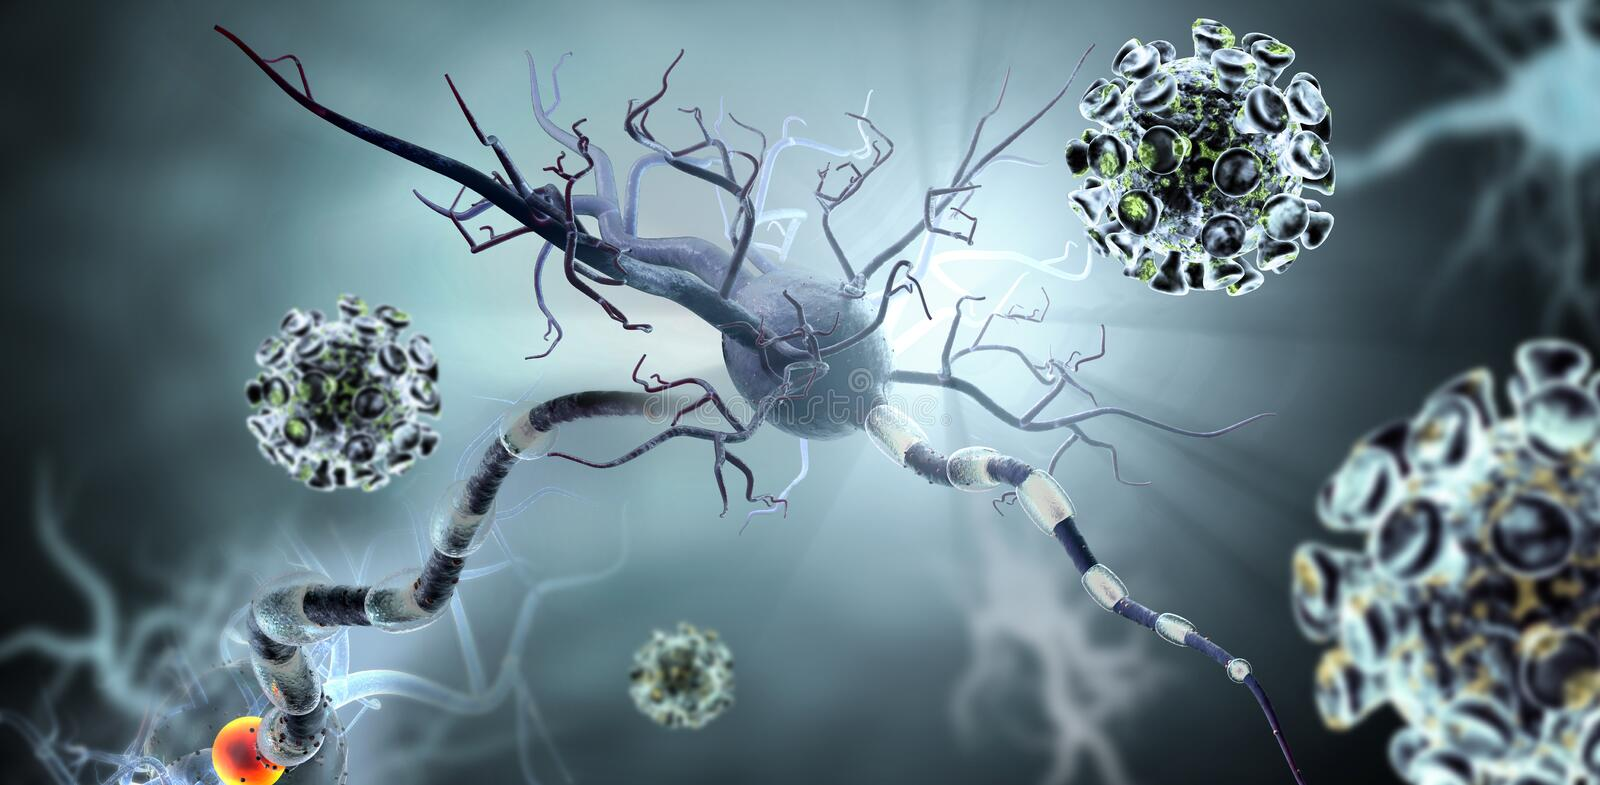 Viruses attacking nerve cells. High quality 3d render of viruses attacking nerve cells, concept for Neurologic Diseases, tumors and brain surgery stock photos